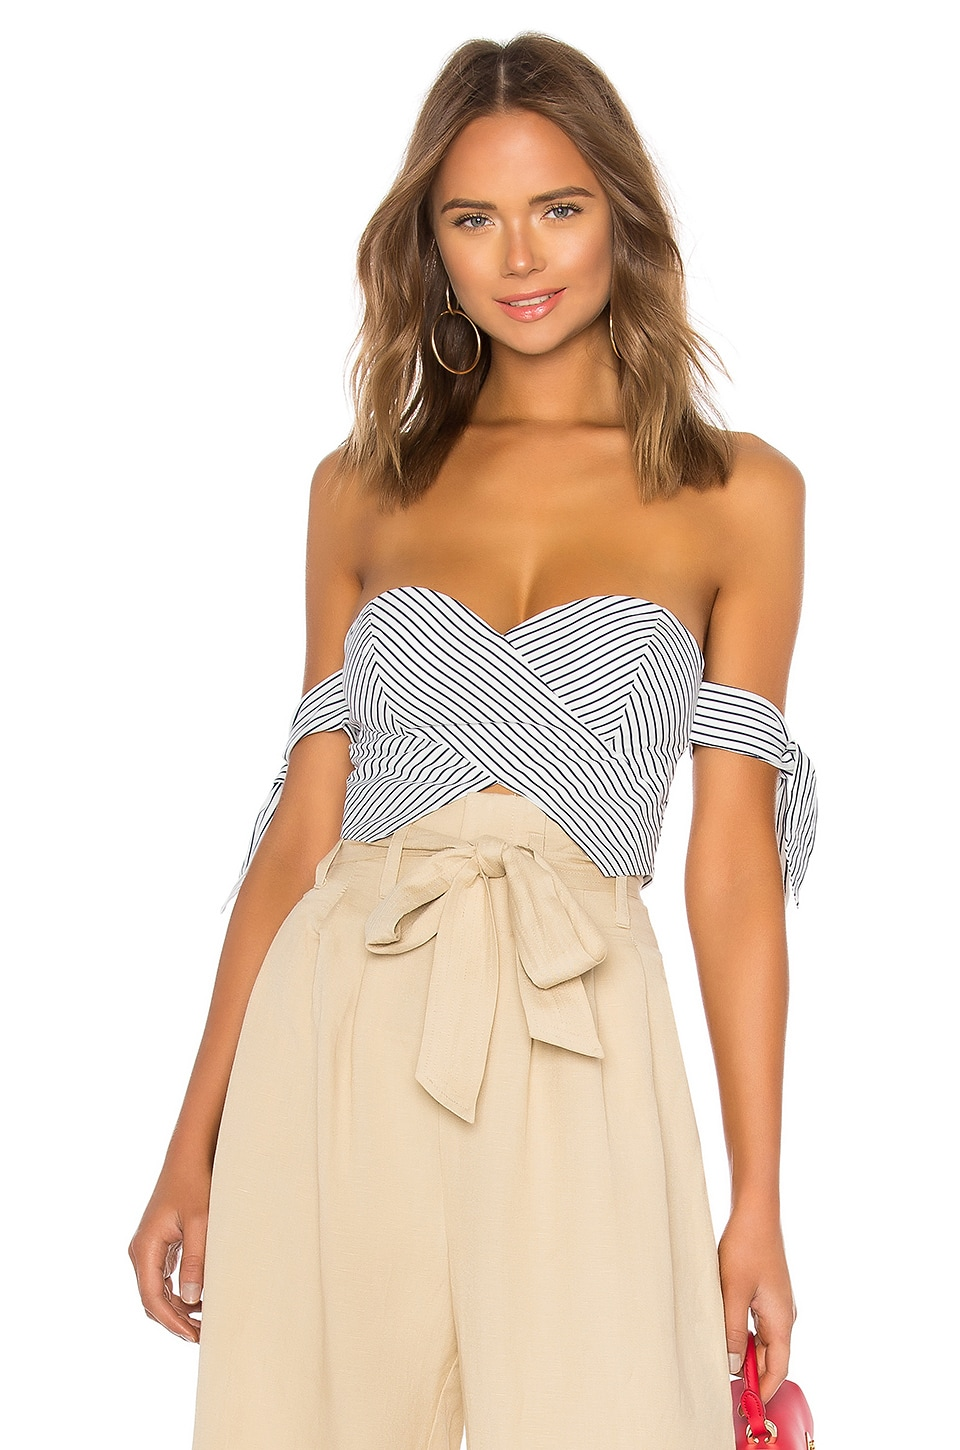 About Us Beatrice Striped Tie Sleeve Corset in White & Navy Stripe